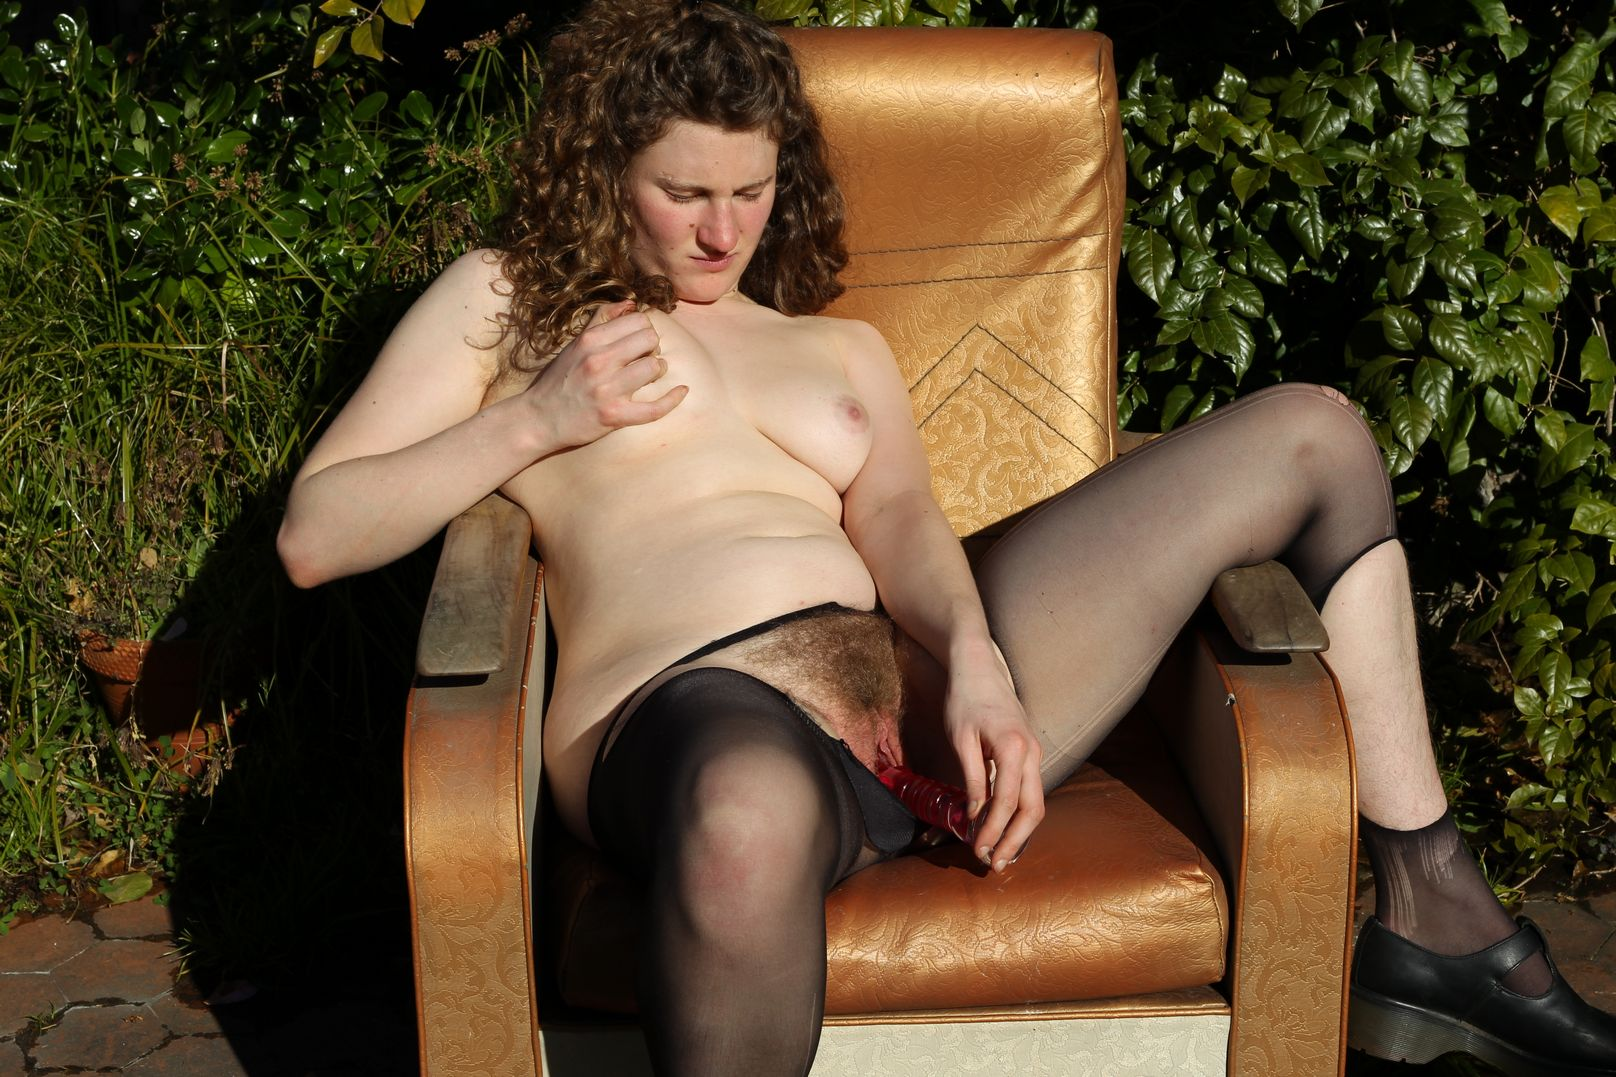 vanessa looks sexy in her black stockings watch her remove them and enjoy her working that hot pussy-6